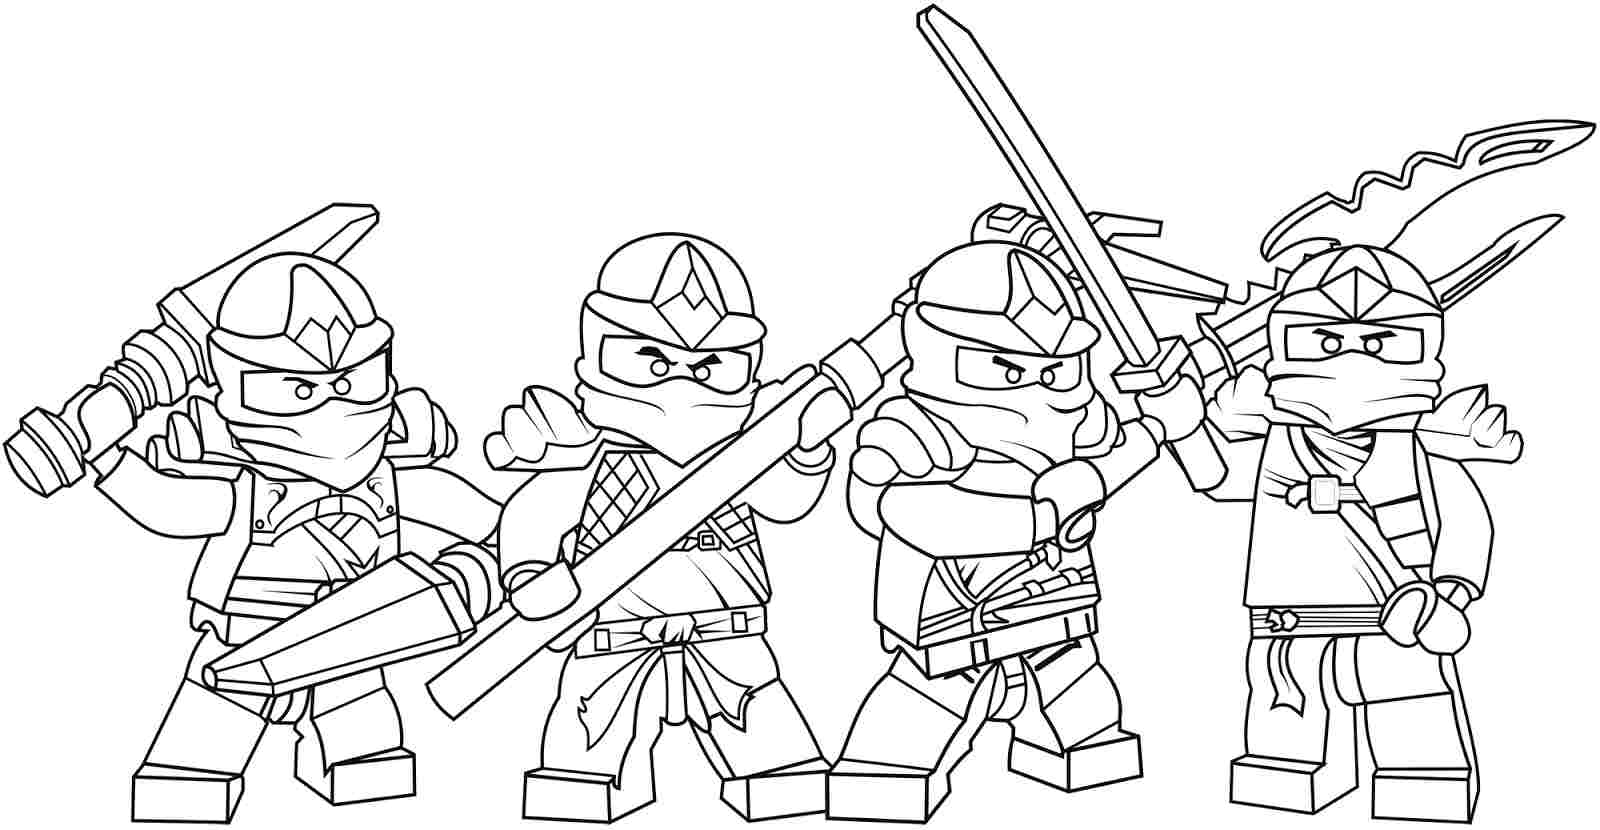 Download Lego Ninjago Coloring Pages To Print